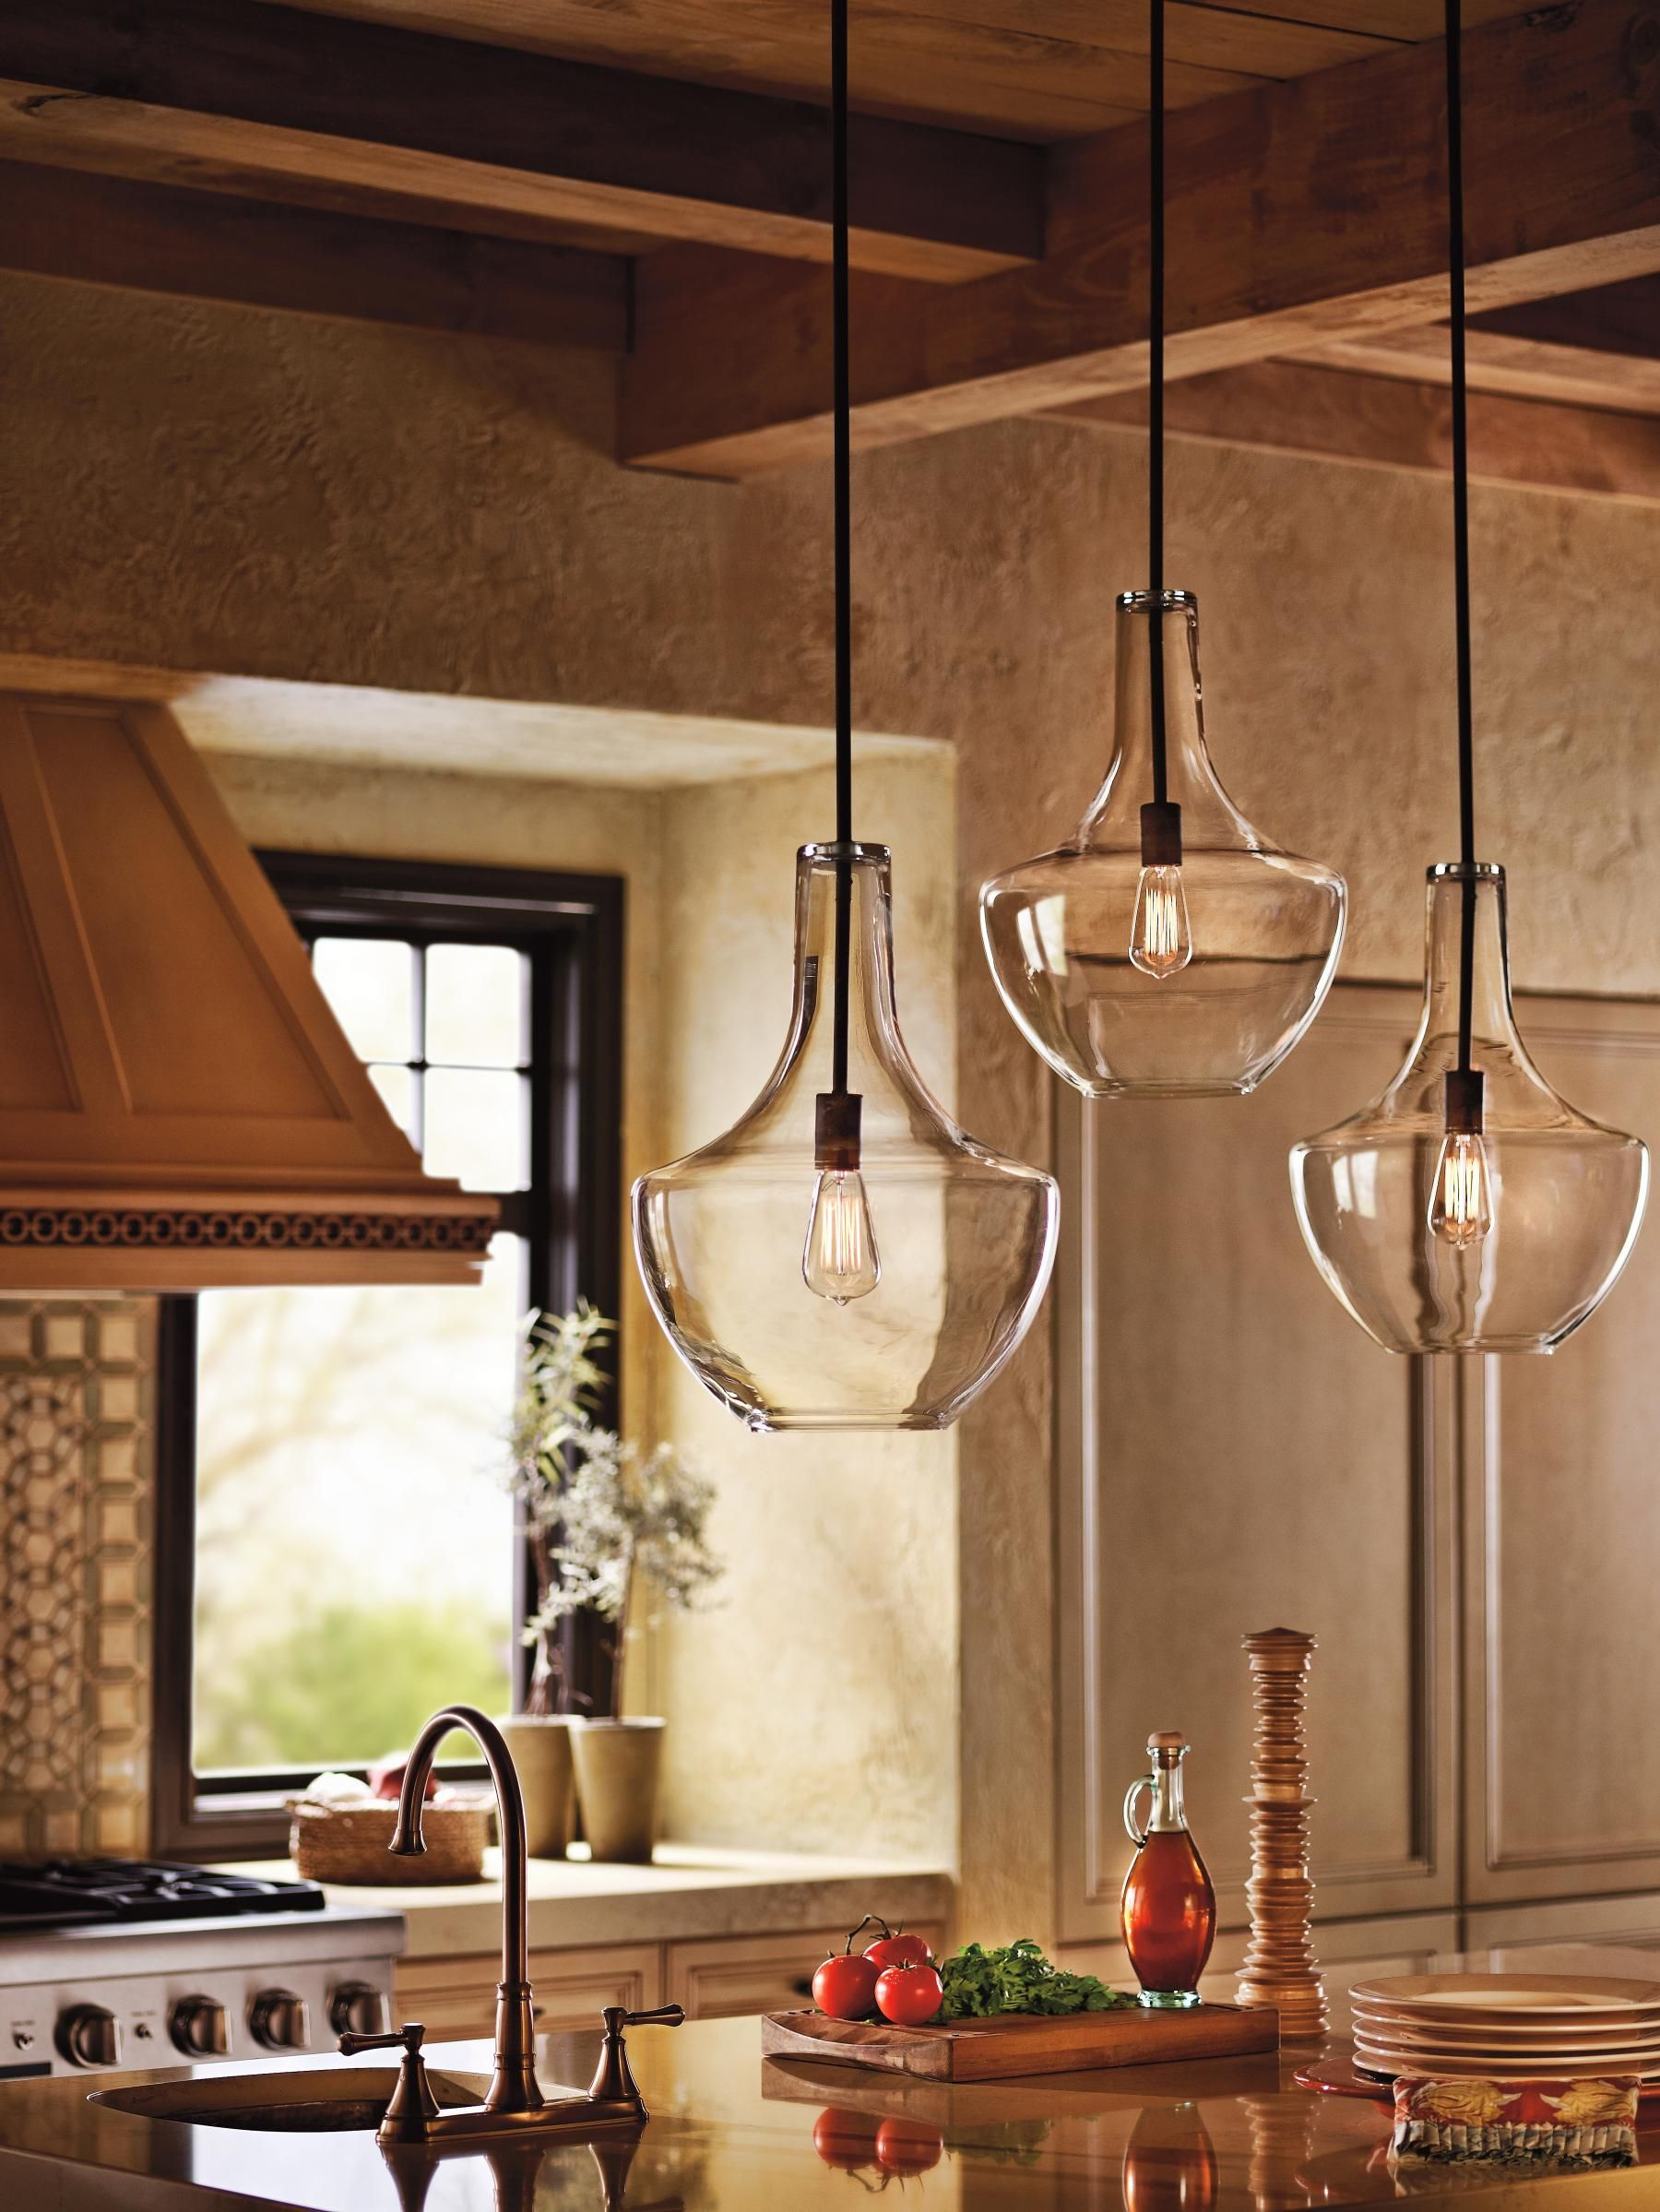 pendant lights for kitchens This transitional style pendant is a perfect option to light up and decorate your kitchen